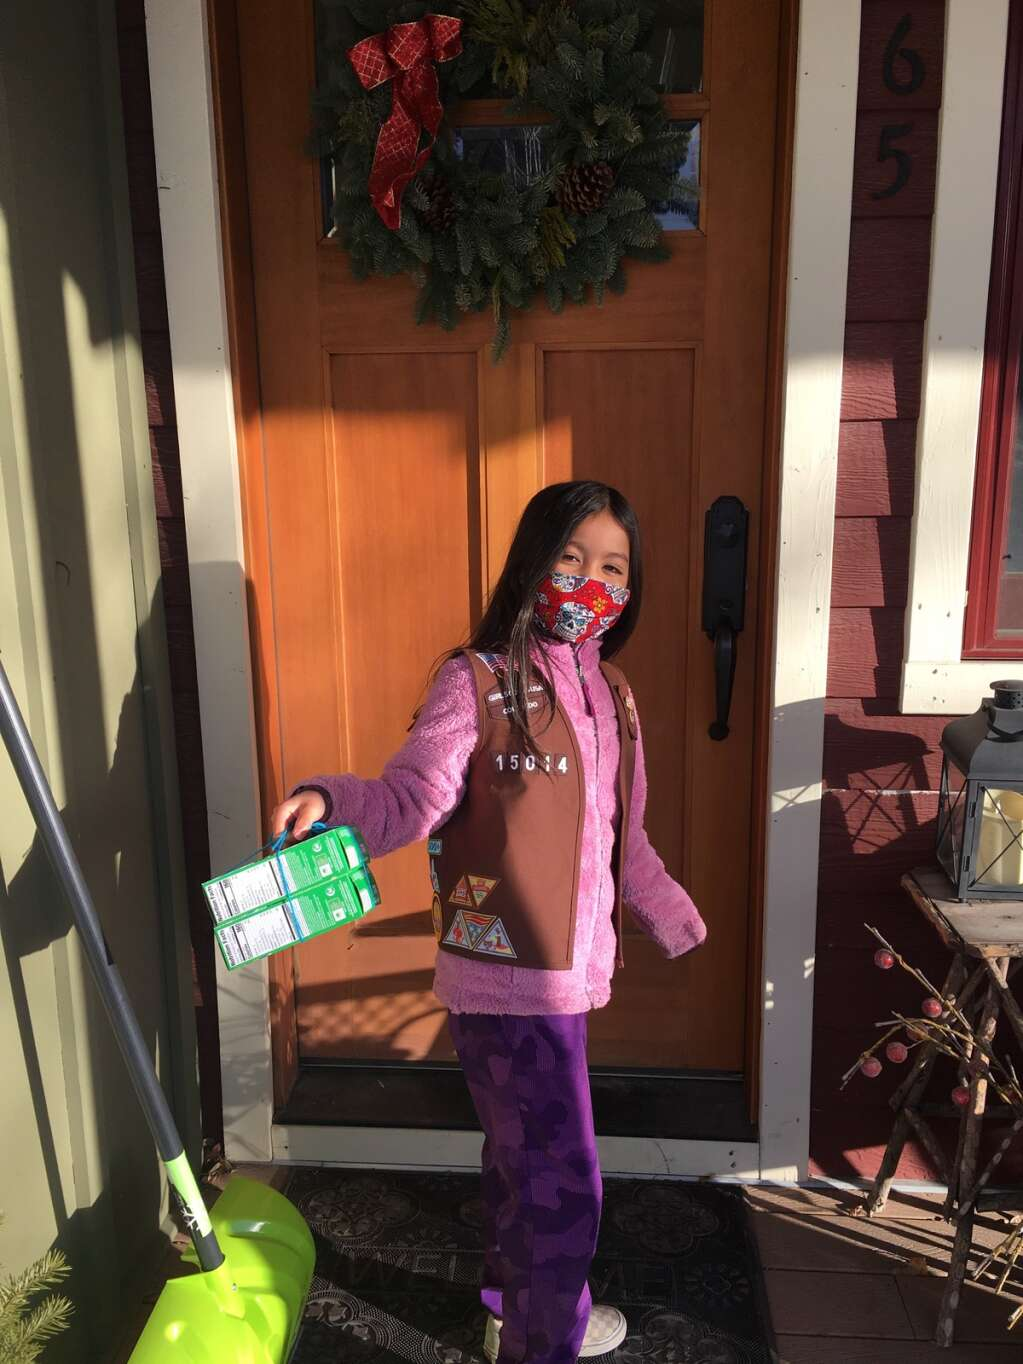 Aspen Girl Scout Cece Yang, 9, delivers boxes of cookies to a customer. | Kathy Yang/Courtesy image